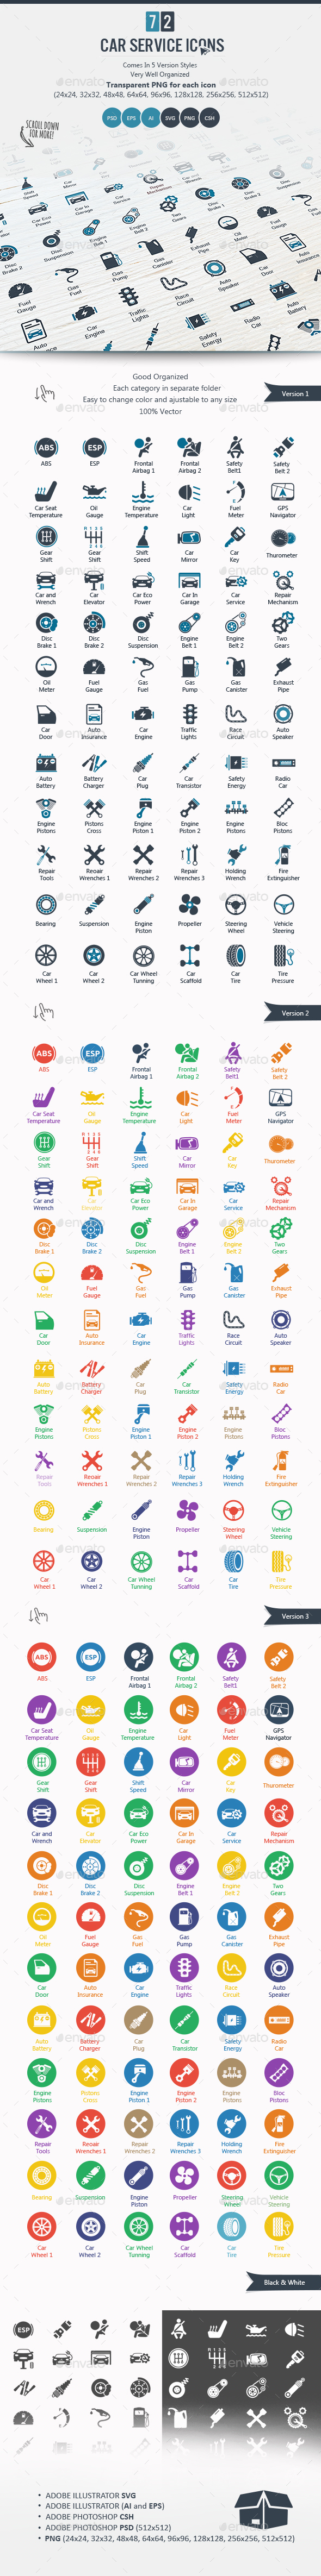 Car Service Icons - Icons